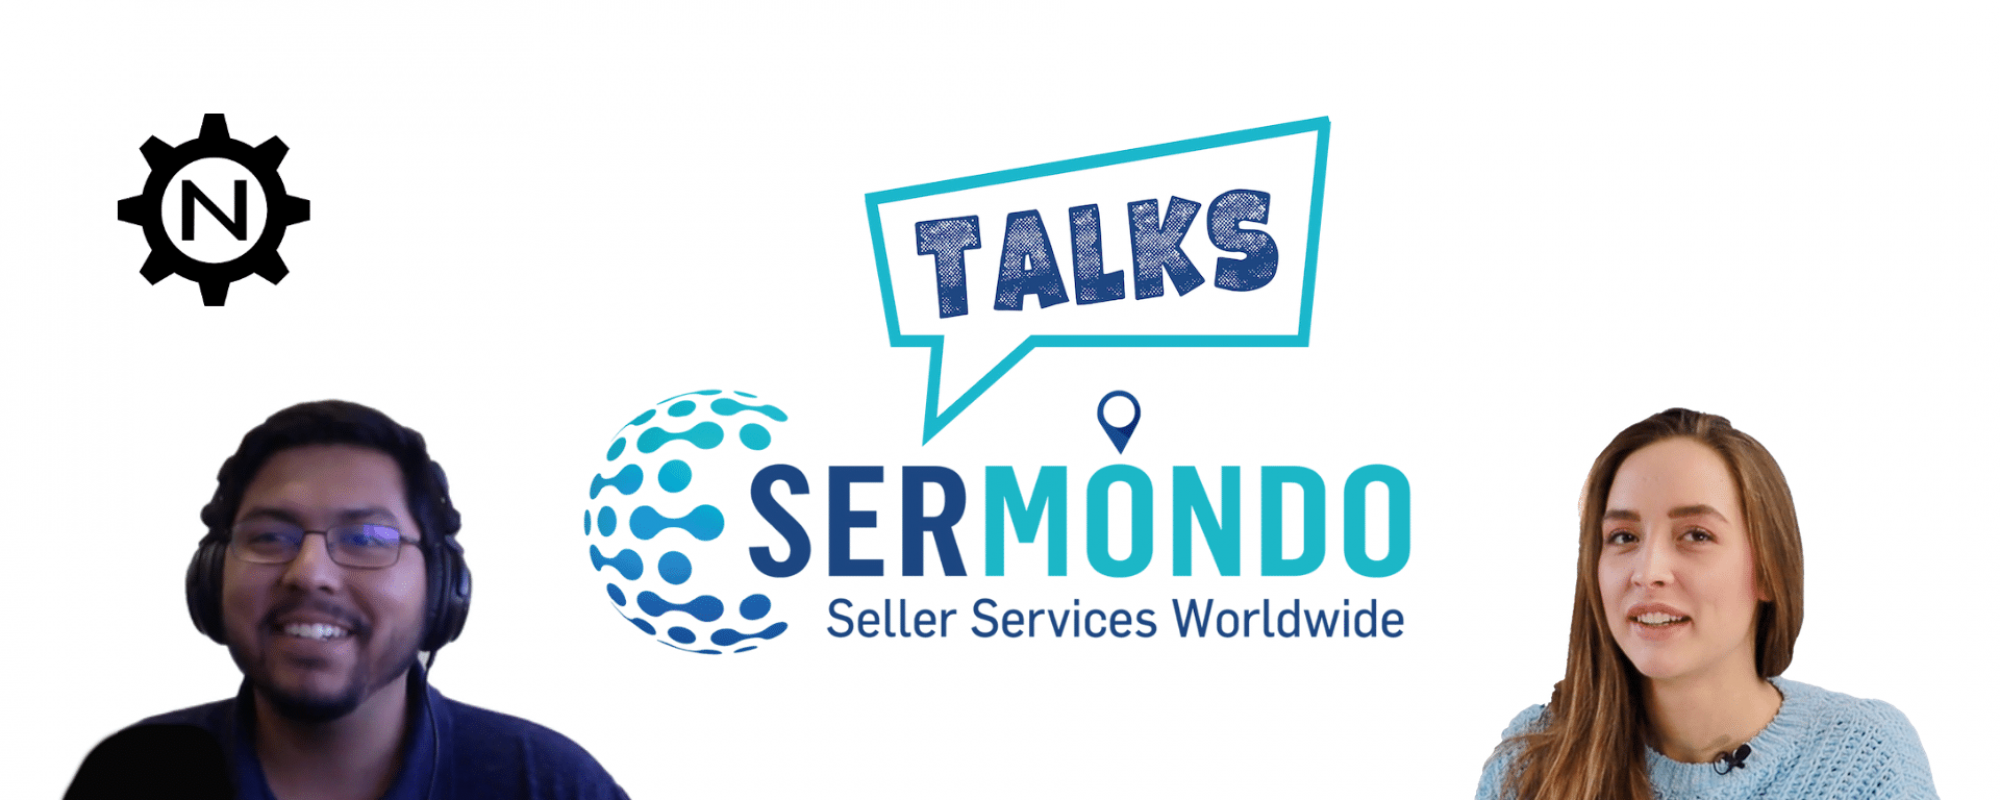 Sermondo Talks Blog Banner (1)